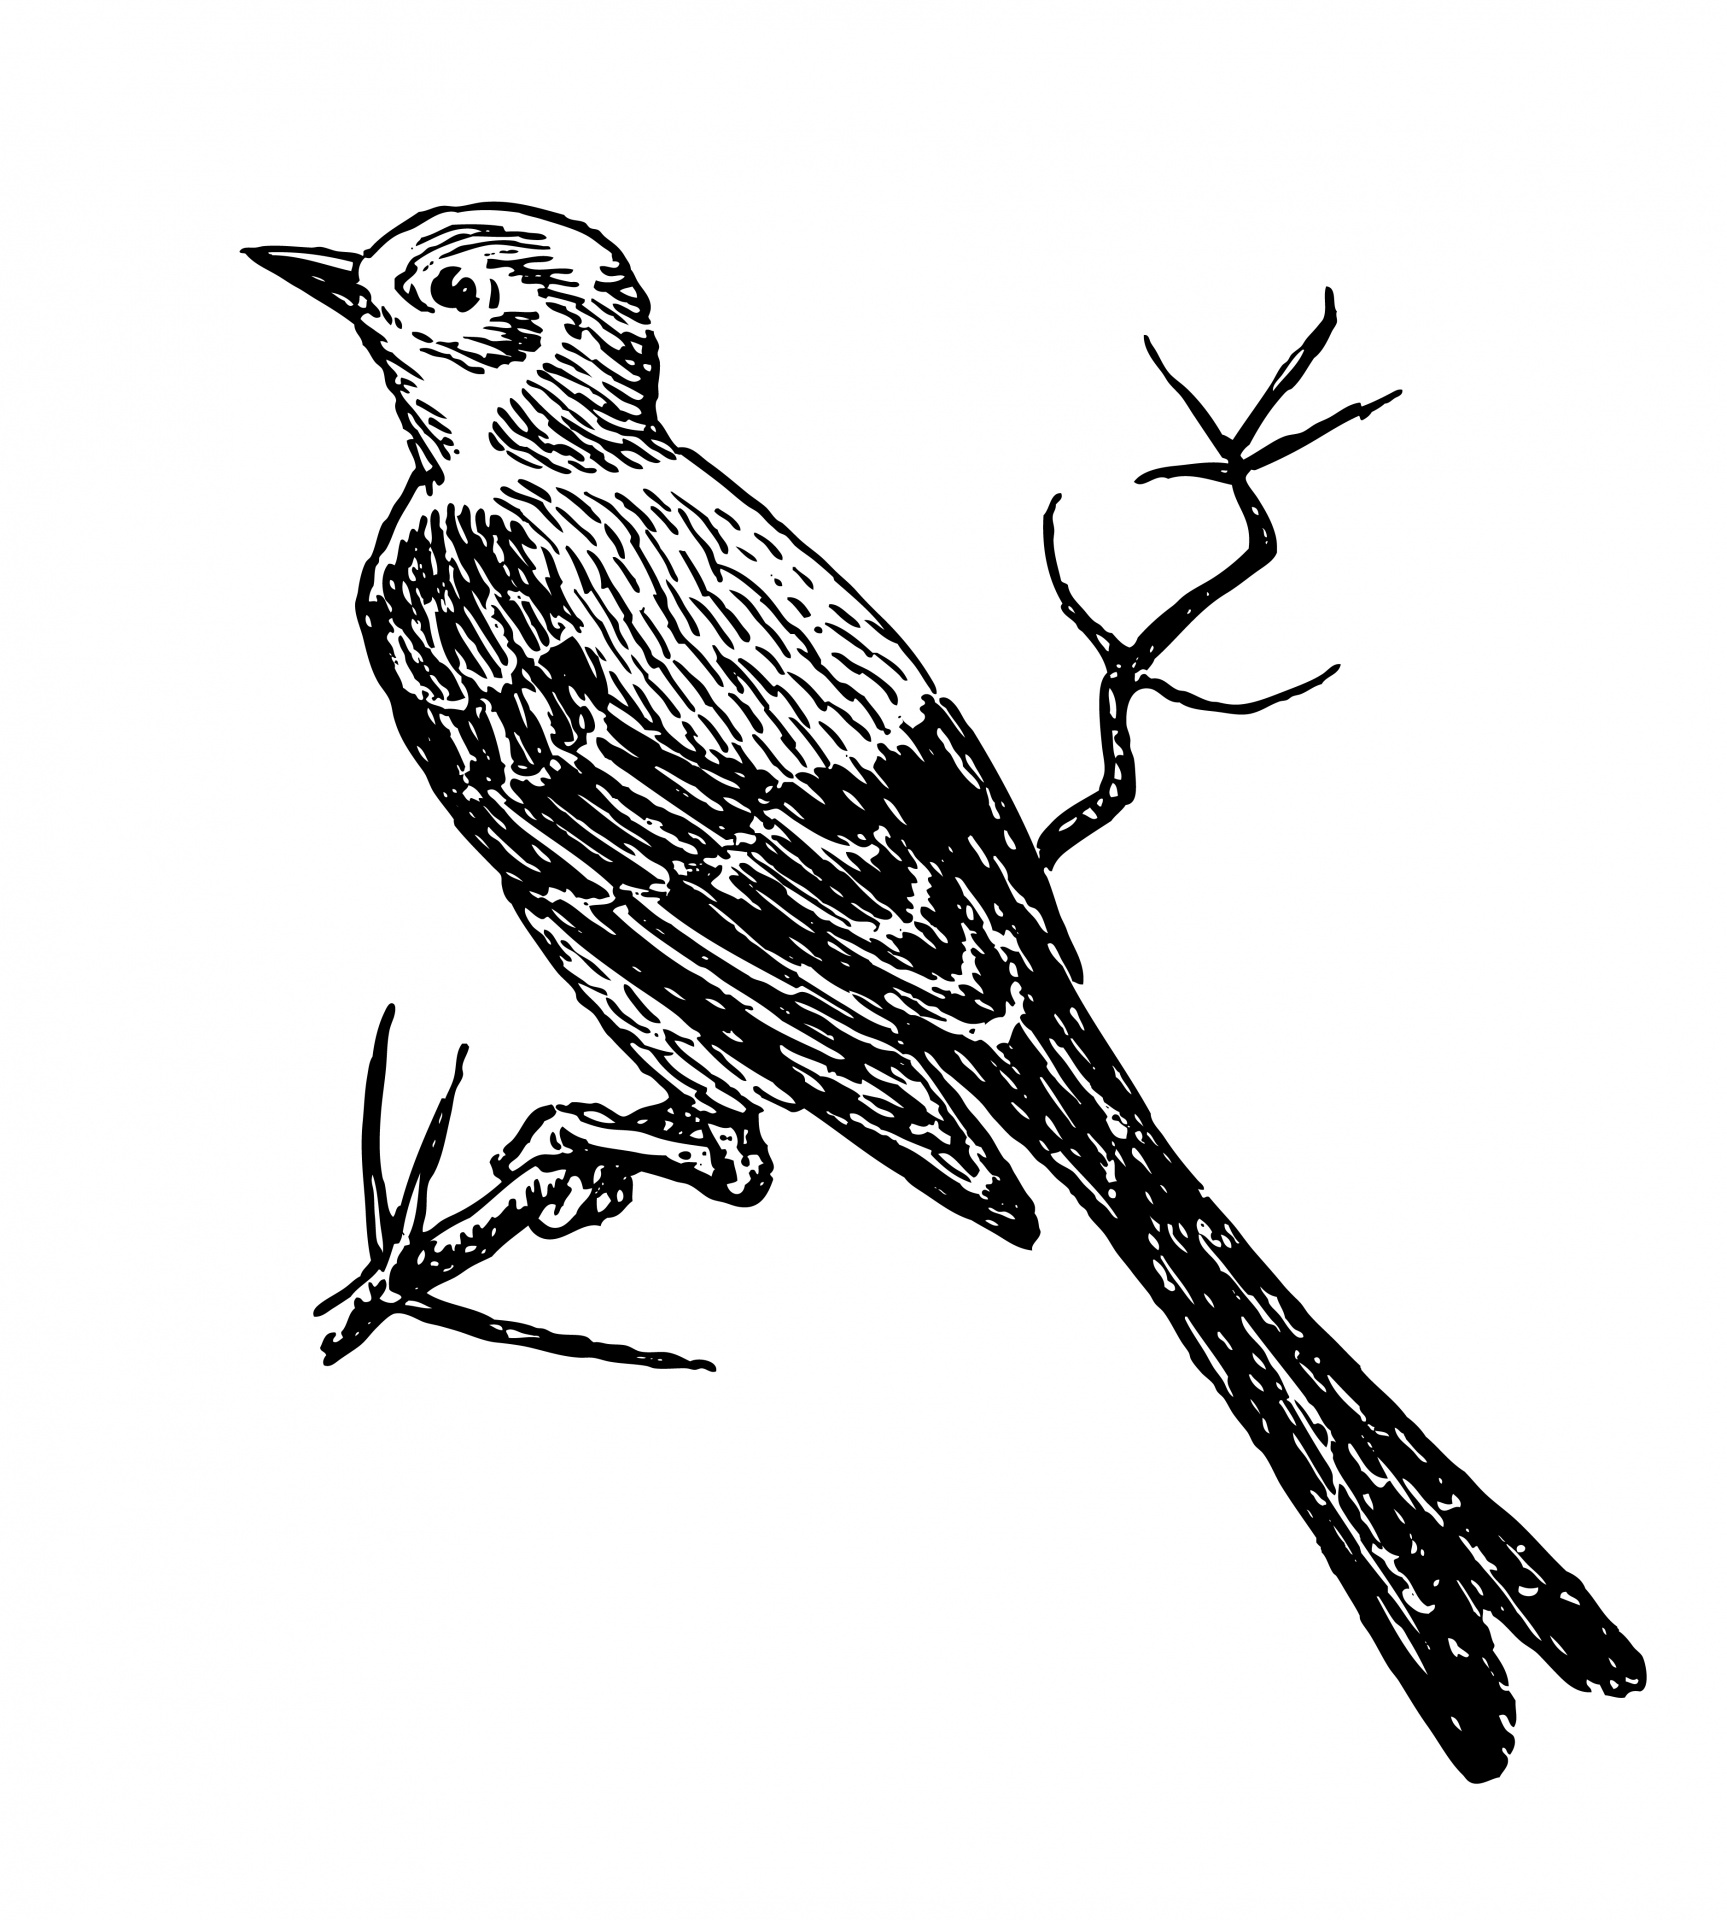 Public domain clipart bird. Illustration free stock photo